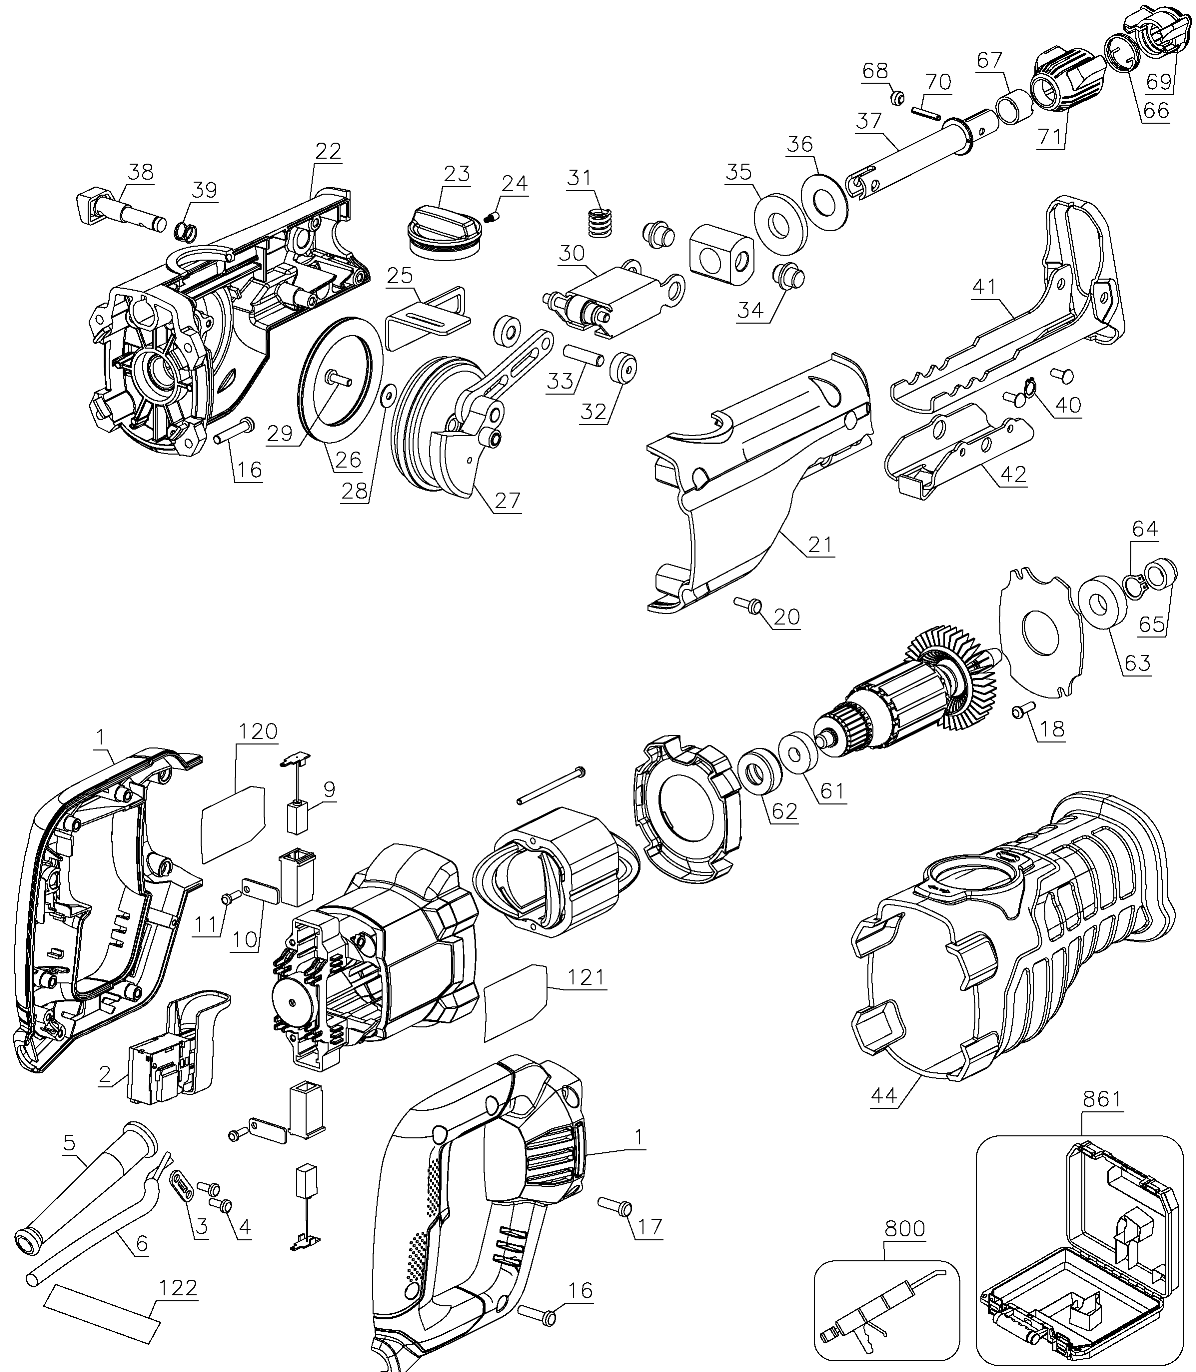 PC85TRSOK - Reciprocating Saw Parts schematic